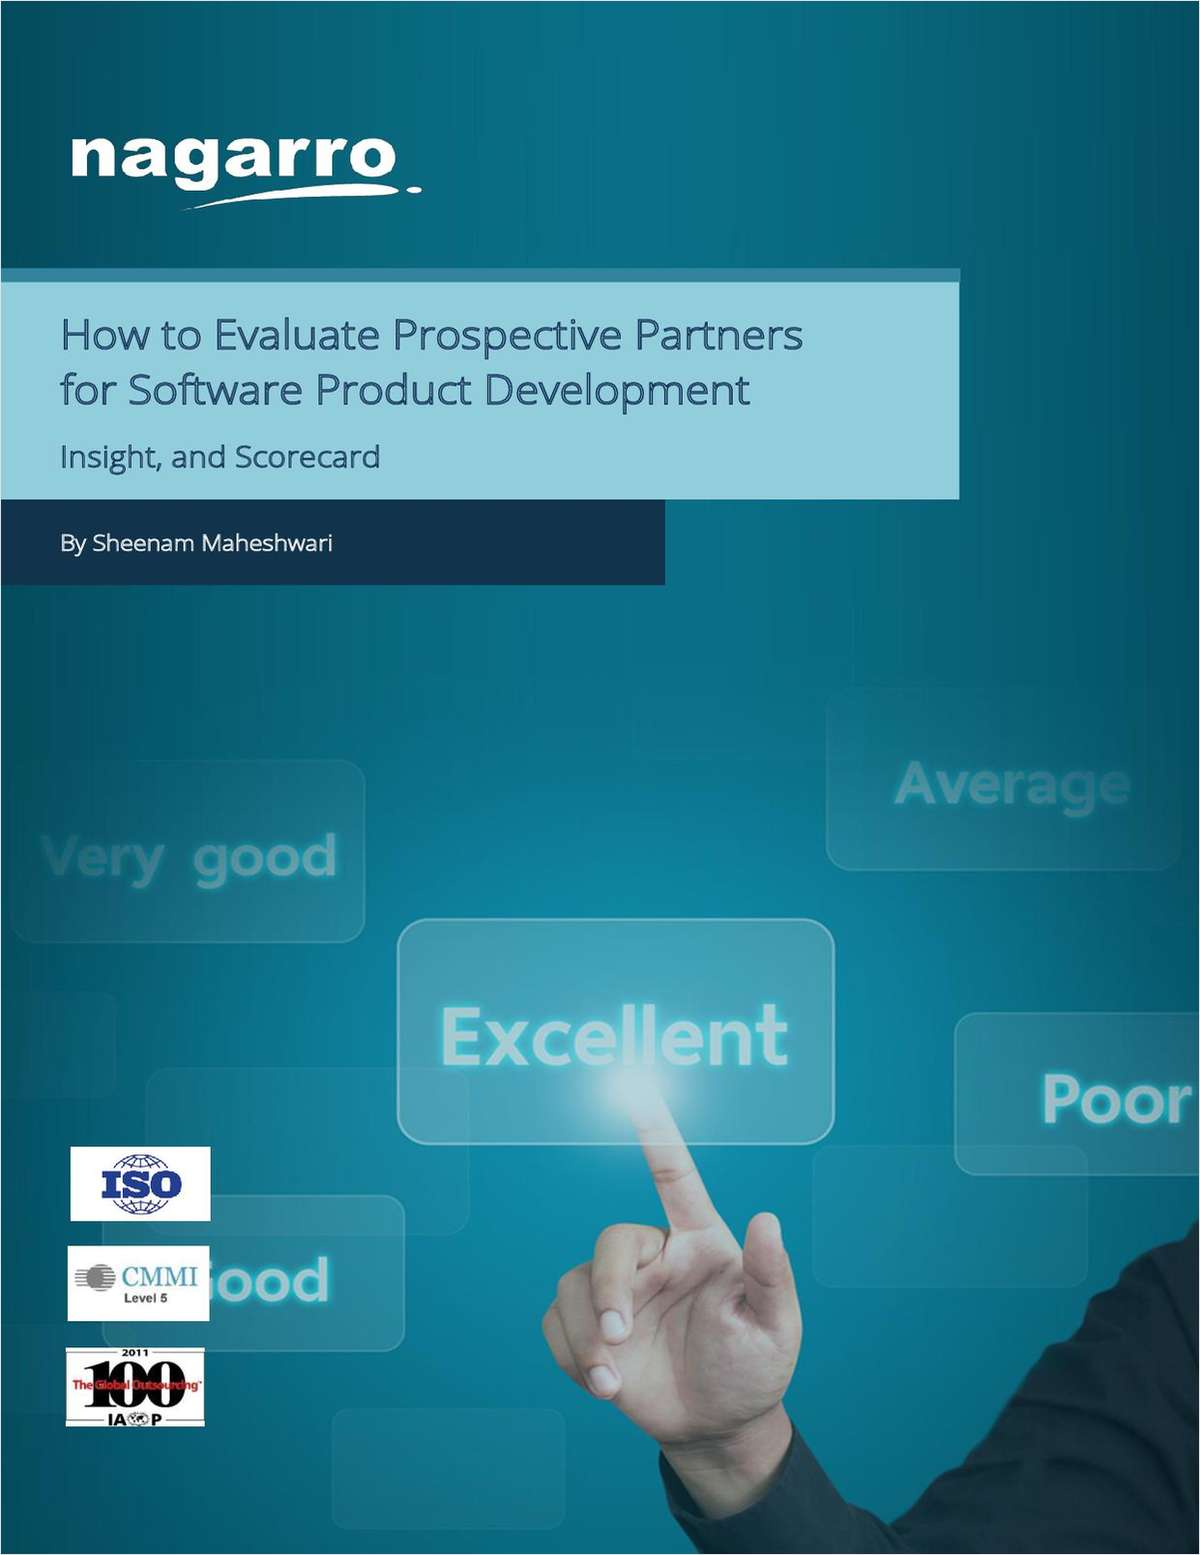 How to Evaluate Prospective Outsourcing Partner for Software Product Development